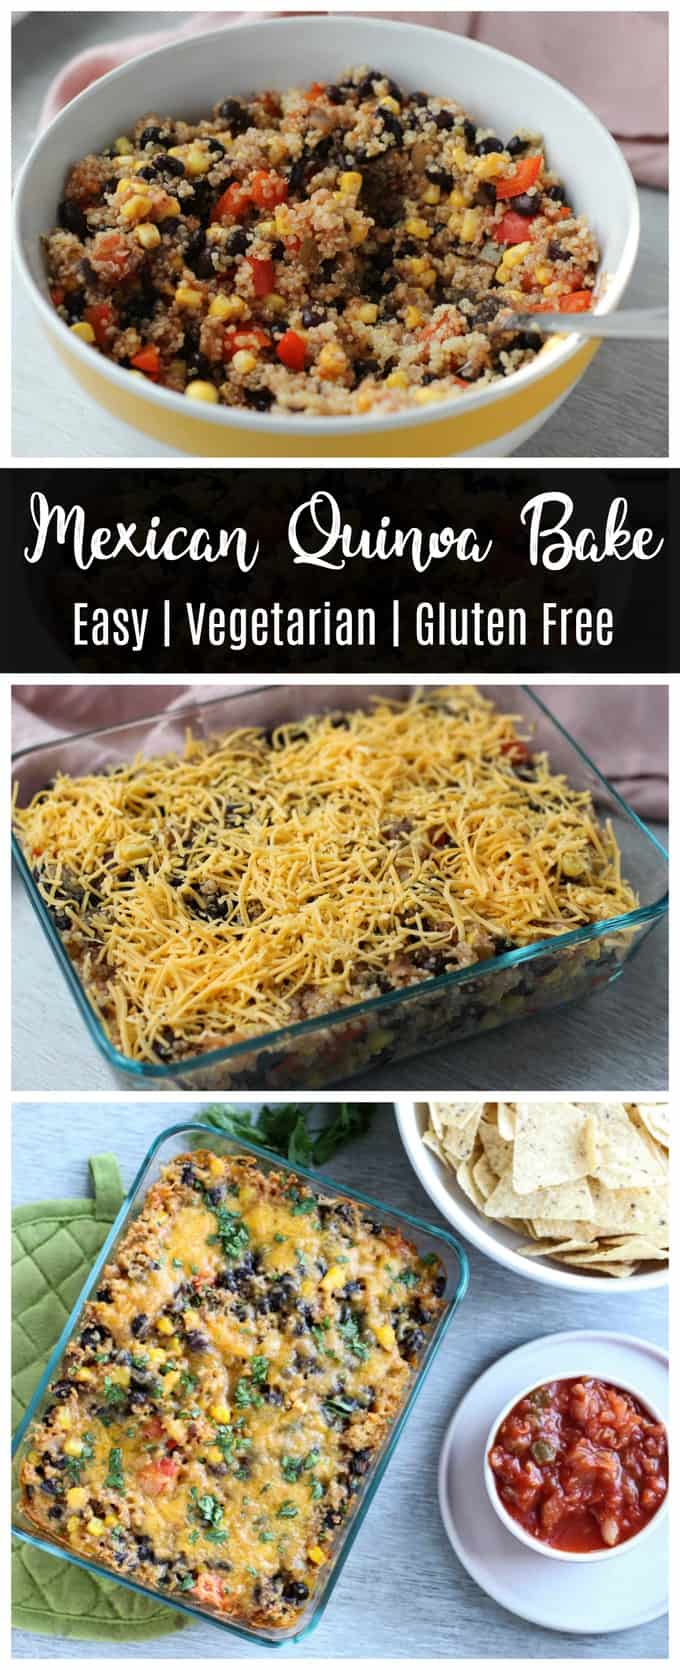 This Mexican quinoa bake is an easy gluten free, vegetarian dinner recipe! Loaded with vegetables, beans, and quinoa, this is a recipe that will keep you full!